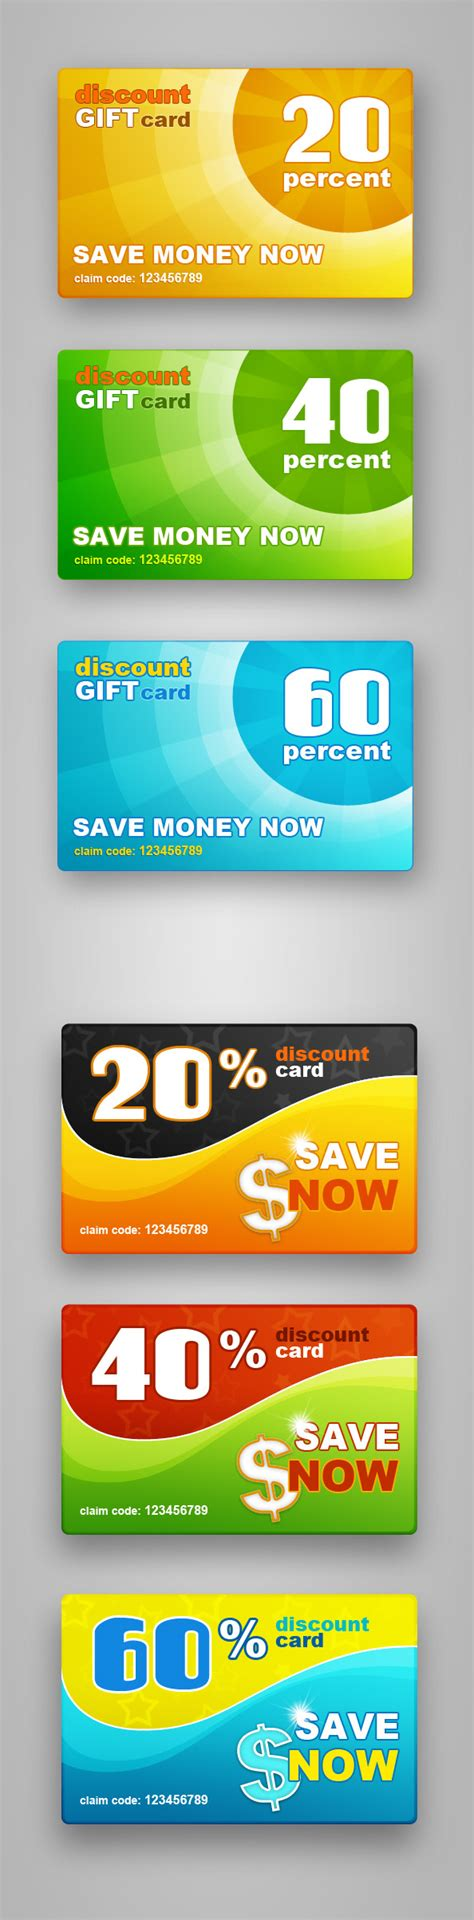 Amazon Discount Gift Cards - why do i need to make money discount gift cards starbucks make money to take surveys